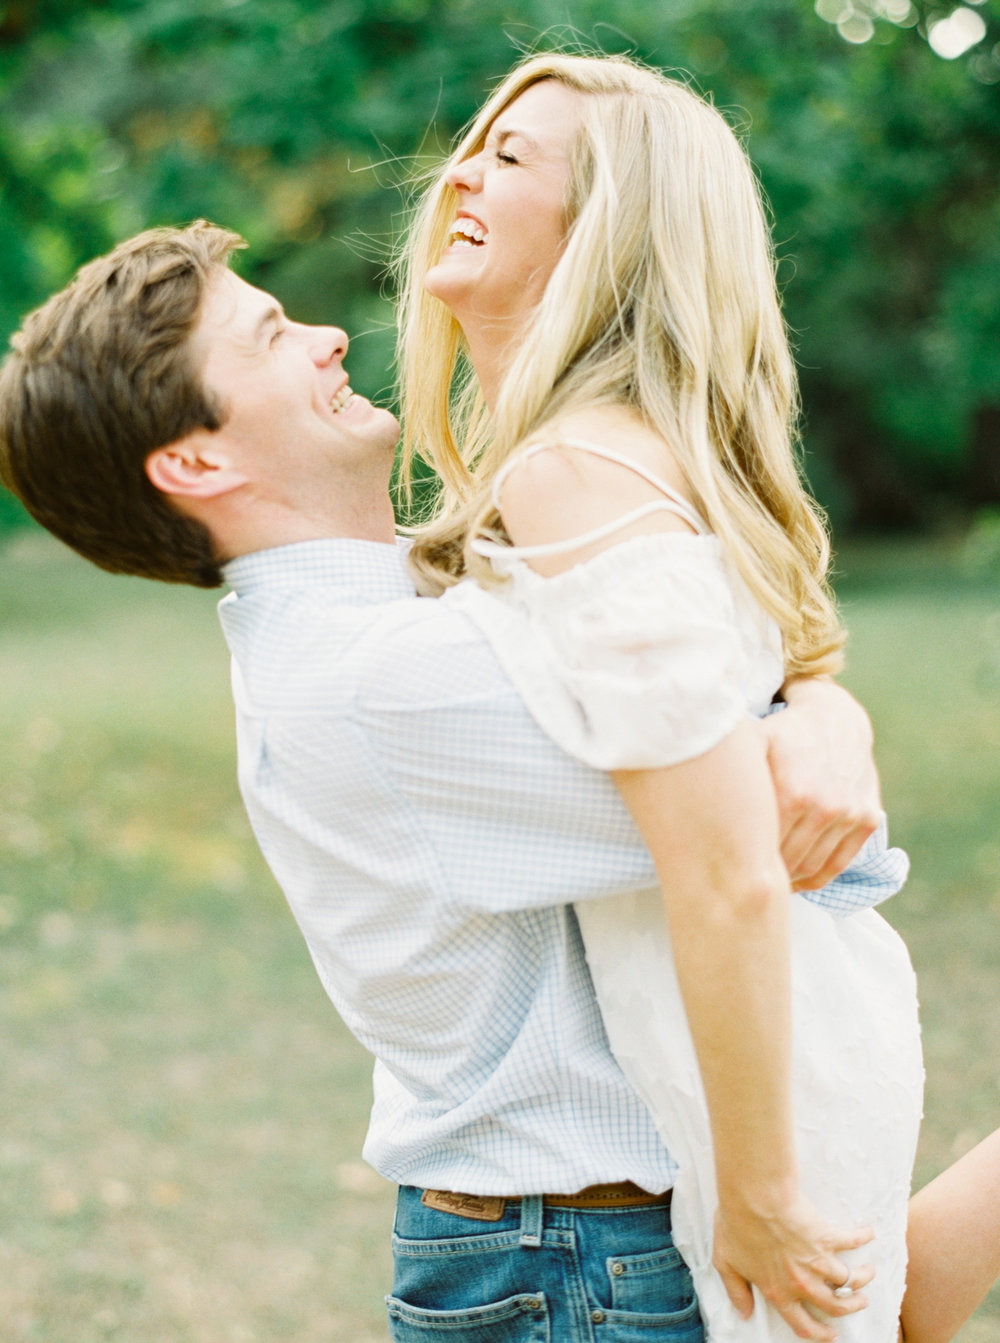 Engagement Session Outfits-192.jpg